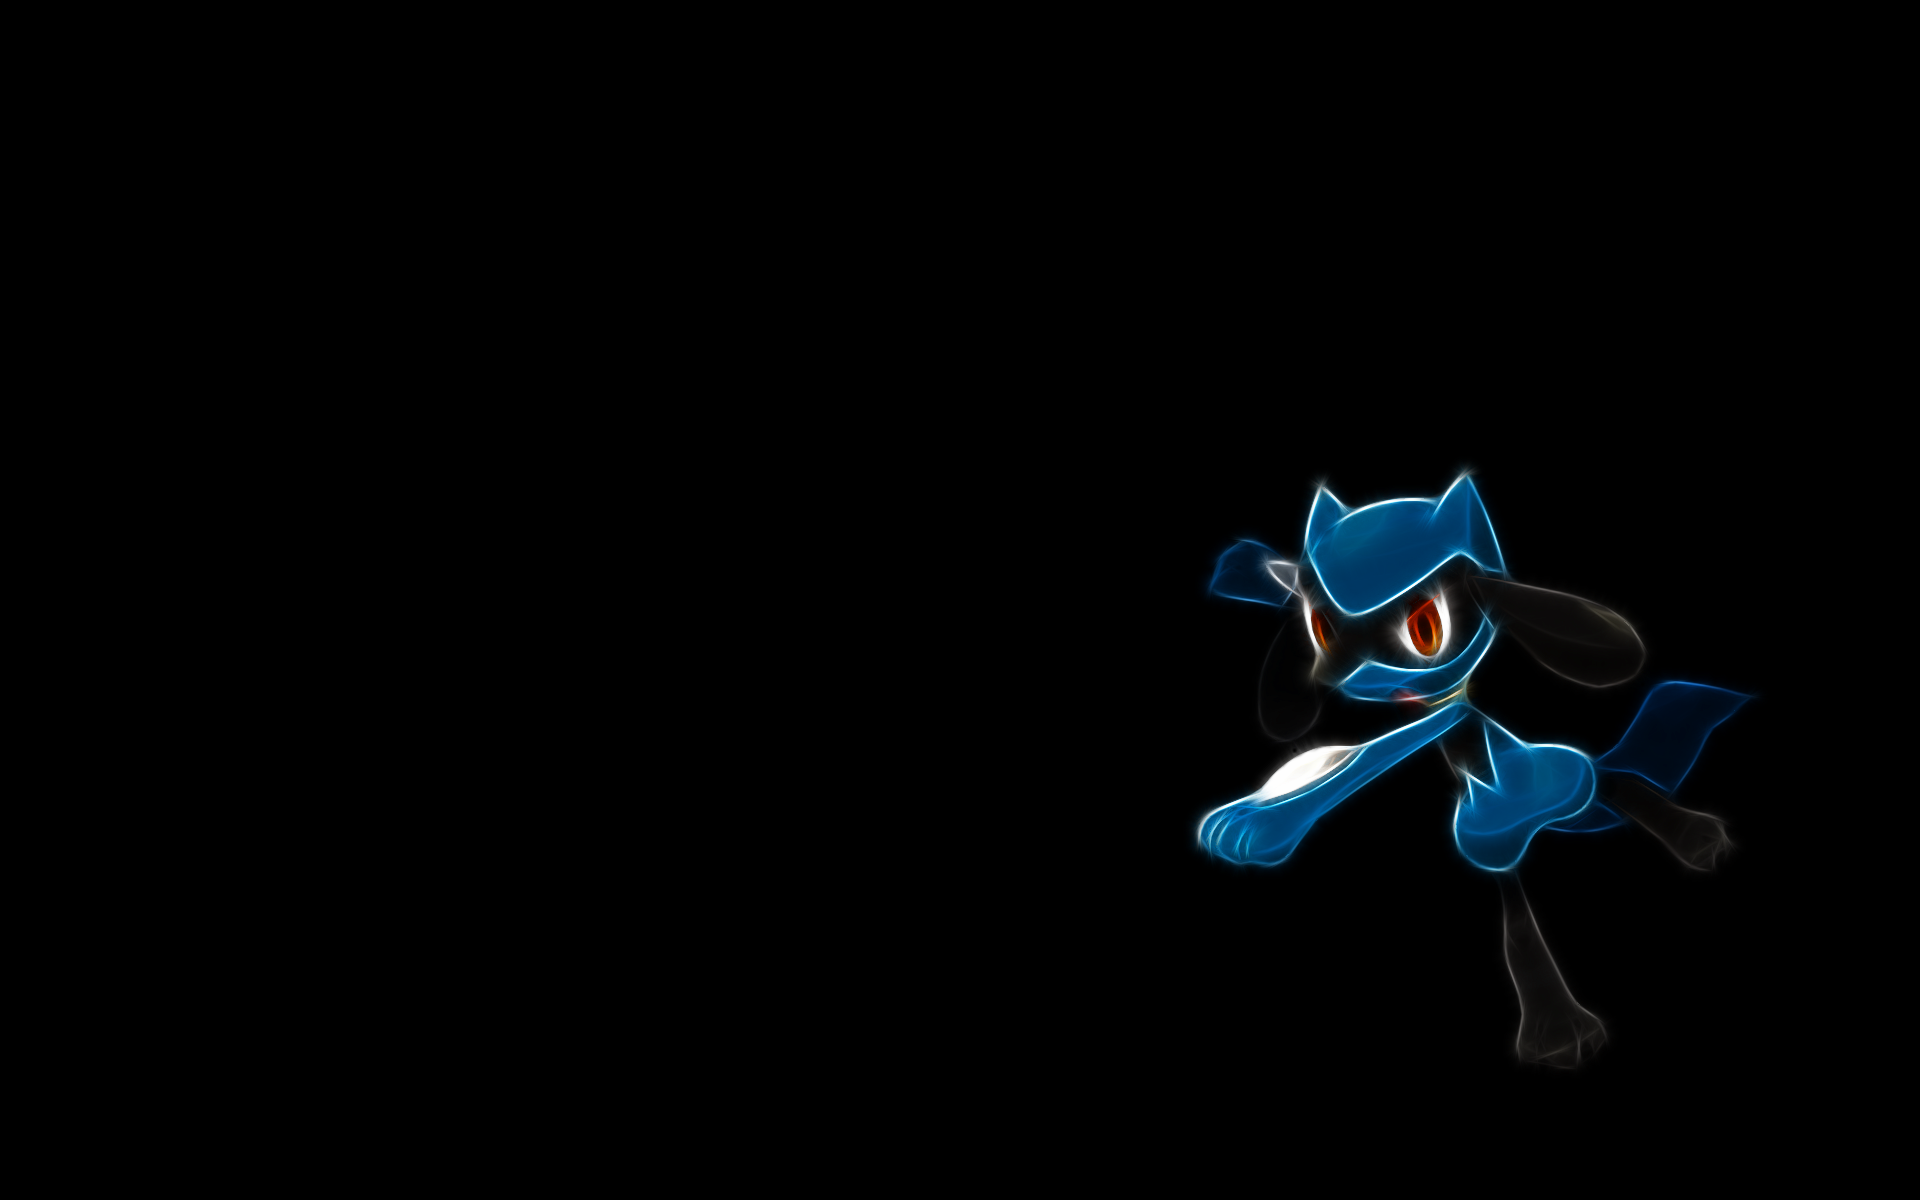 More Beautiful Awesome Pokemon Wallpaper FLgrx Graphics 1920x1200